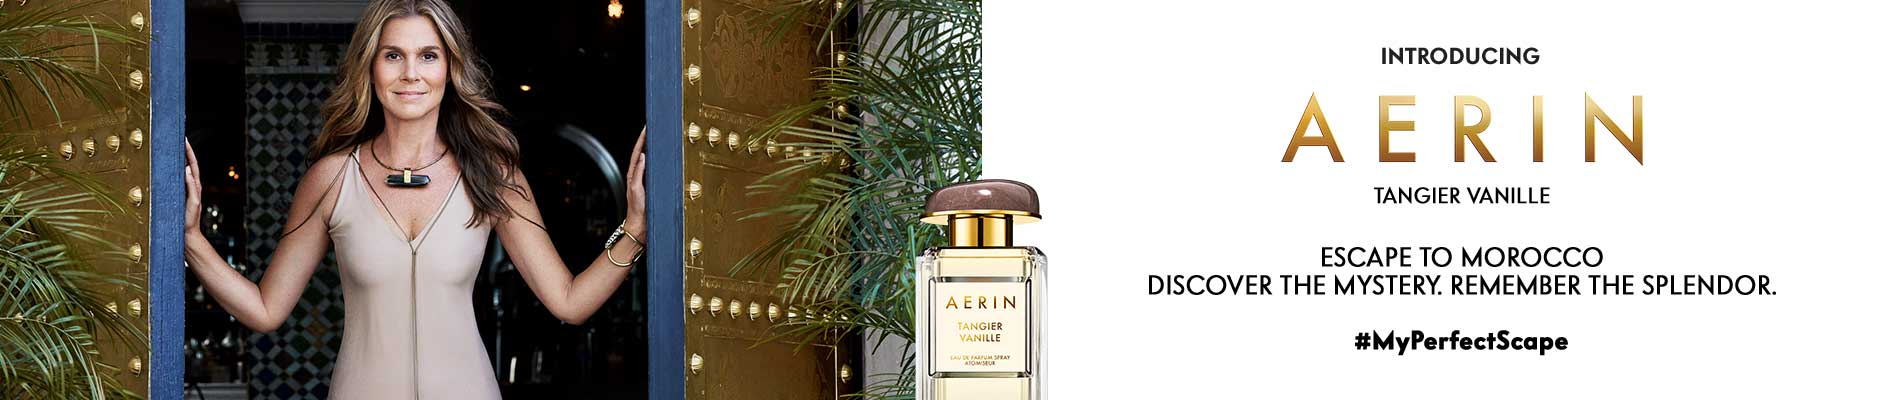 Introducing Aerin Tangier Vanille - Escape to Morocco discover the mystery. Remember the splendor. #MyPerfectScape